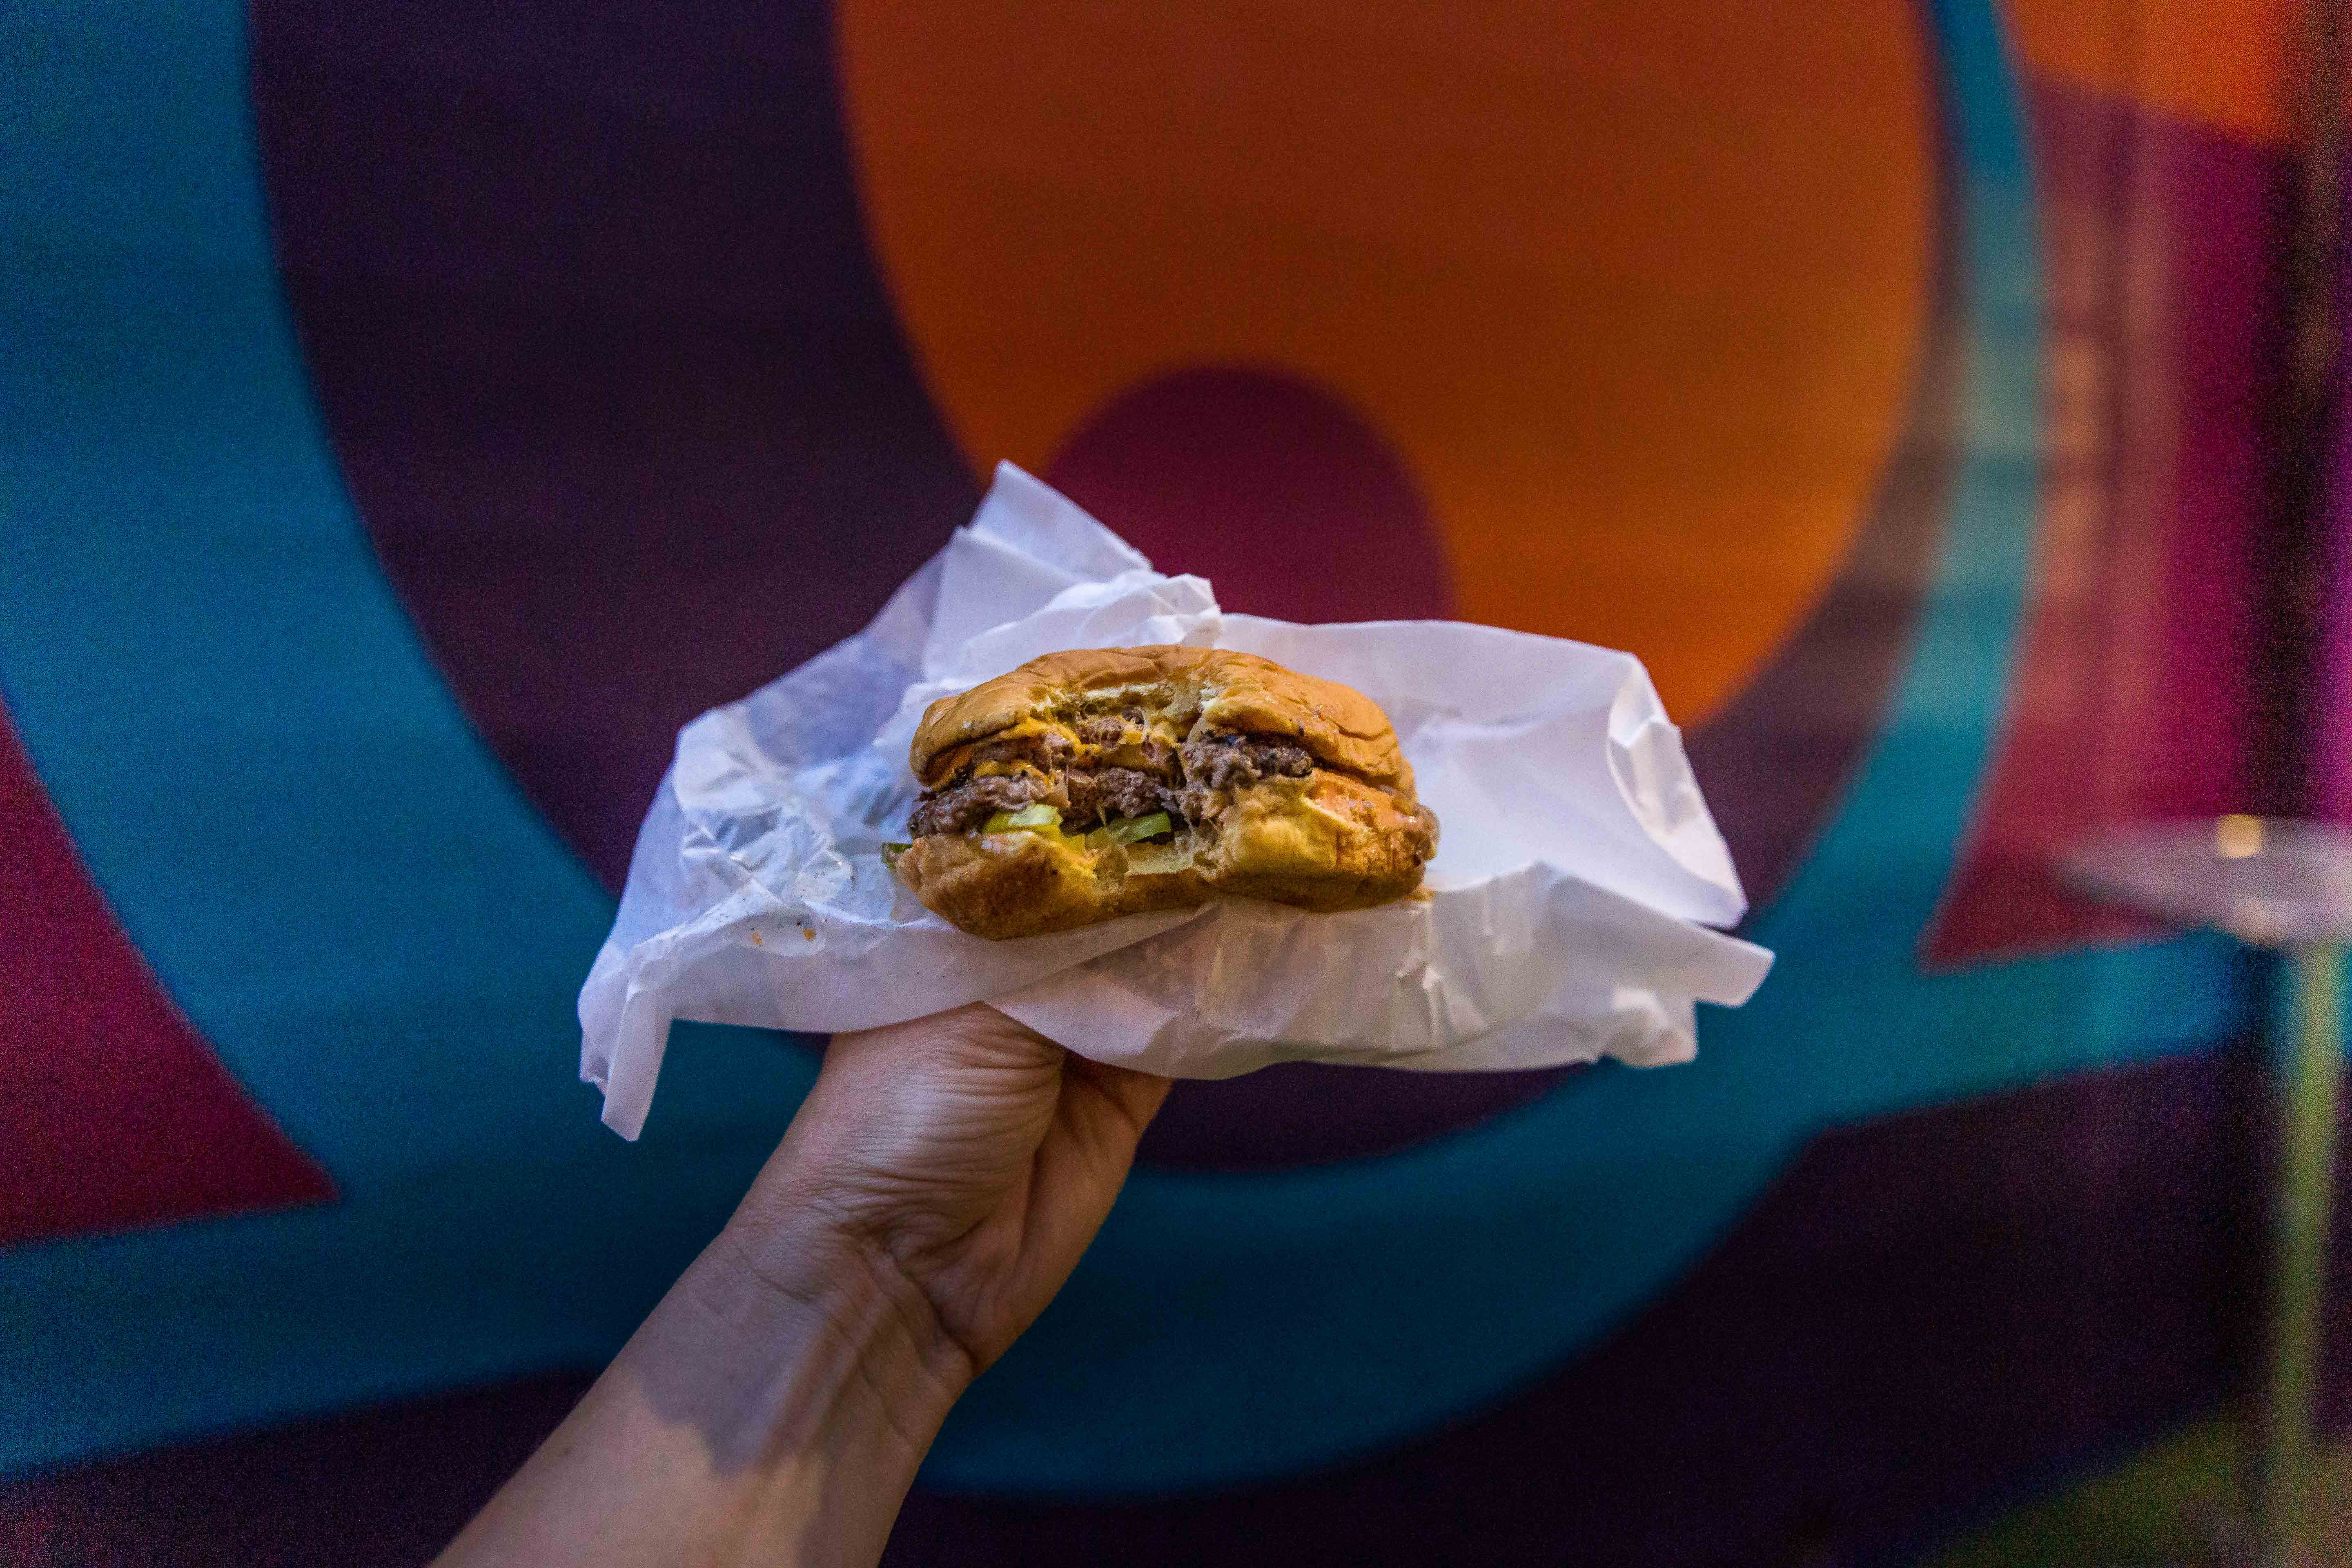 Hand holding a cheeseburger in front of a mural.